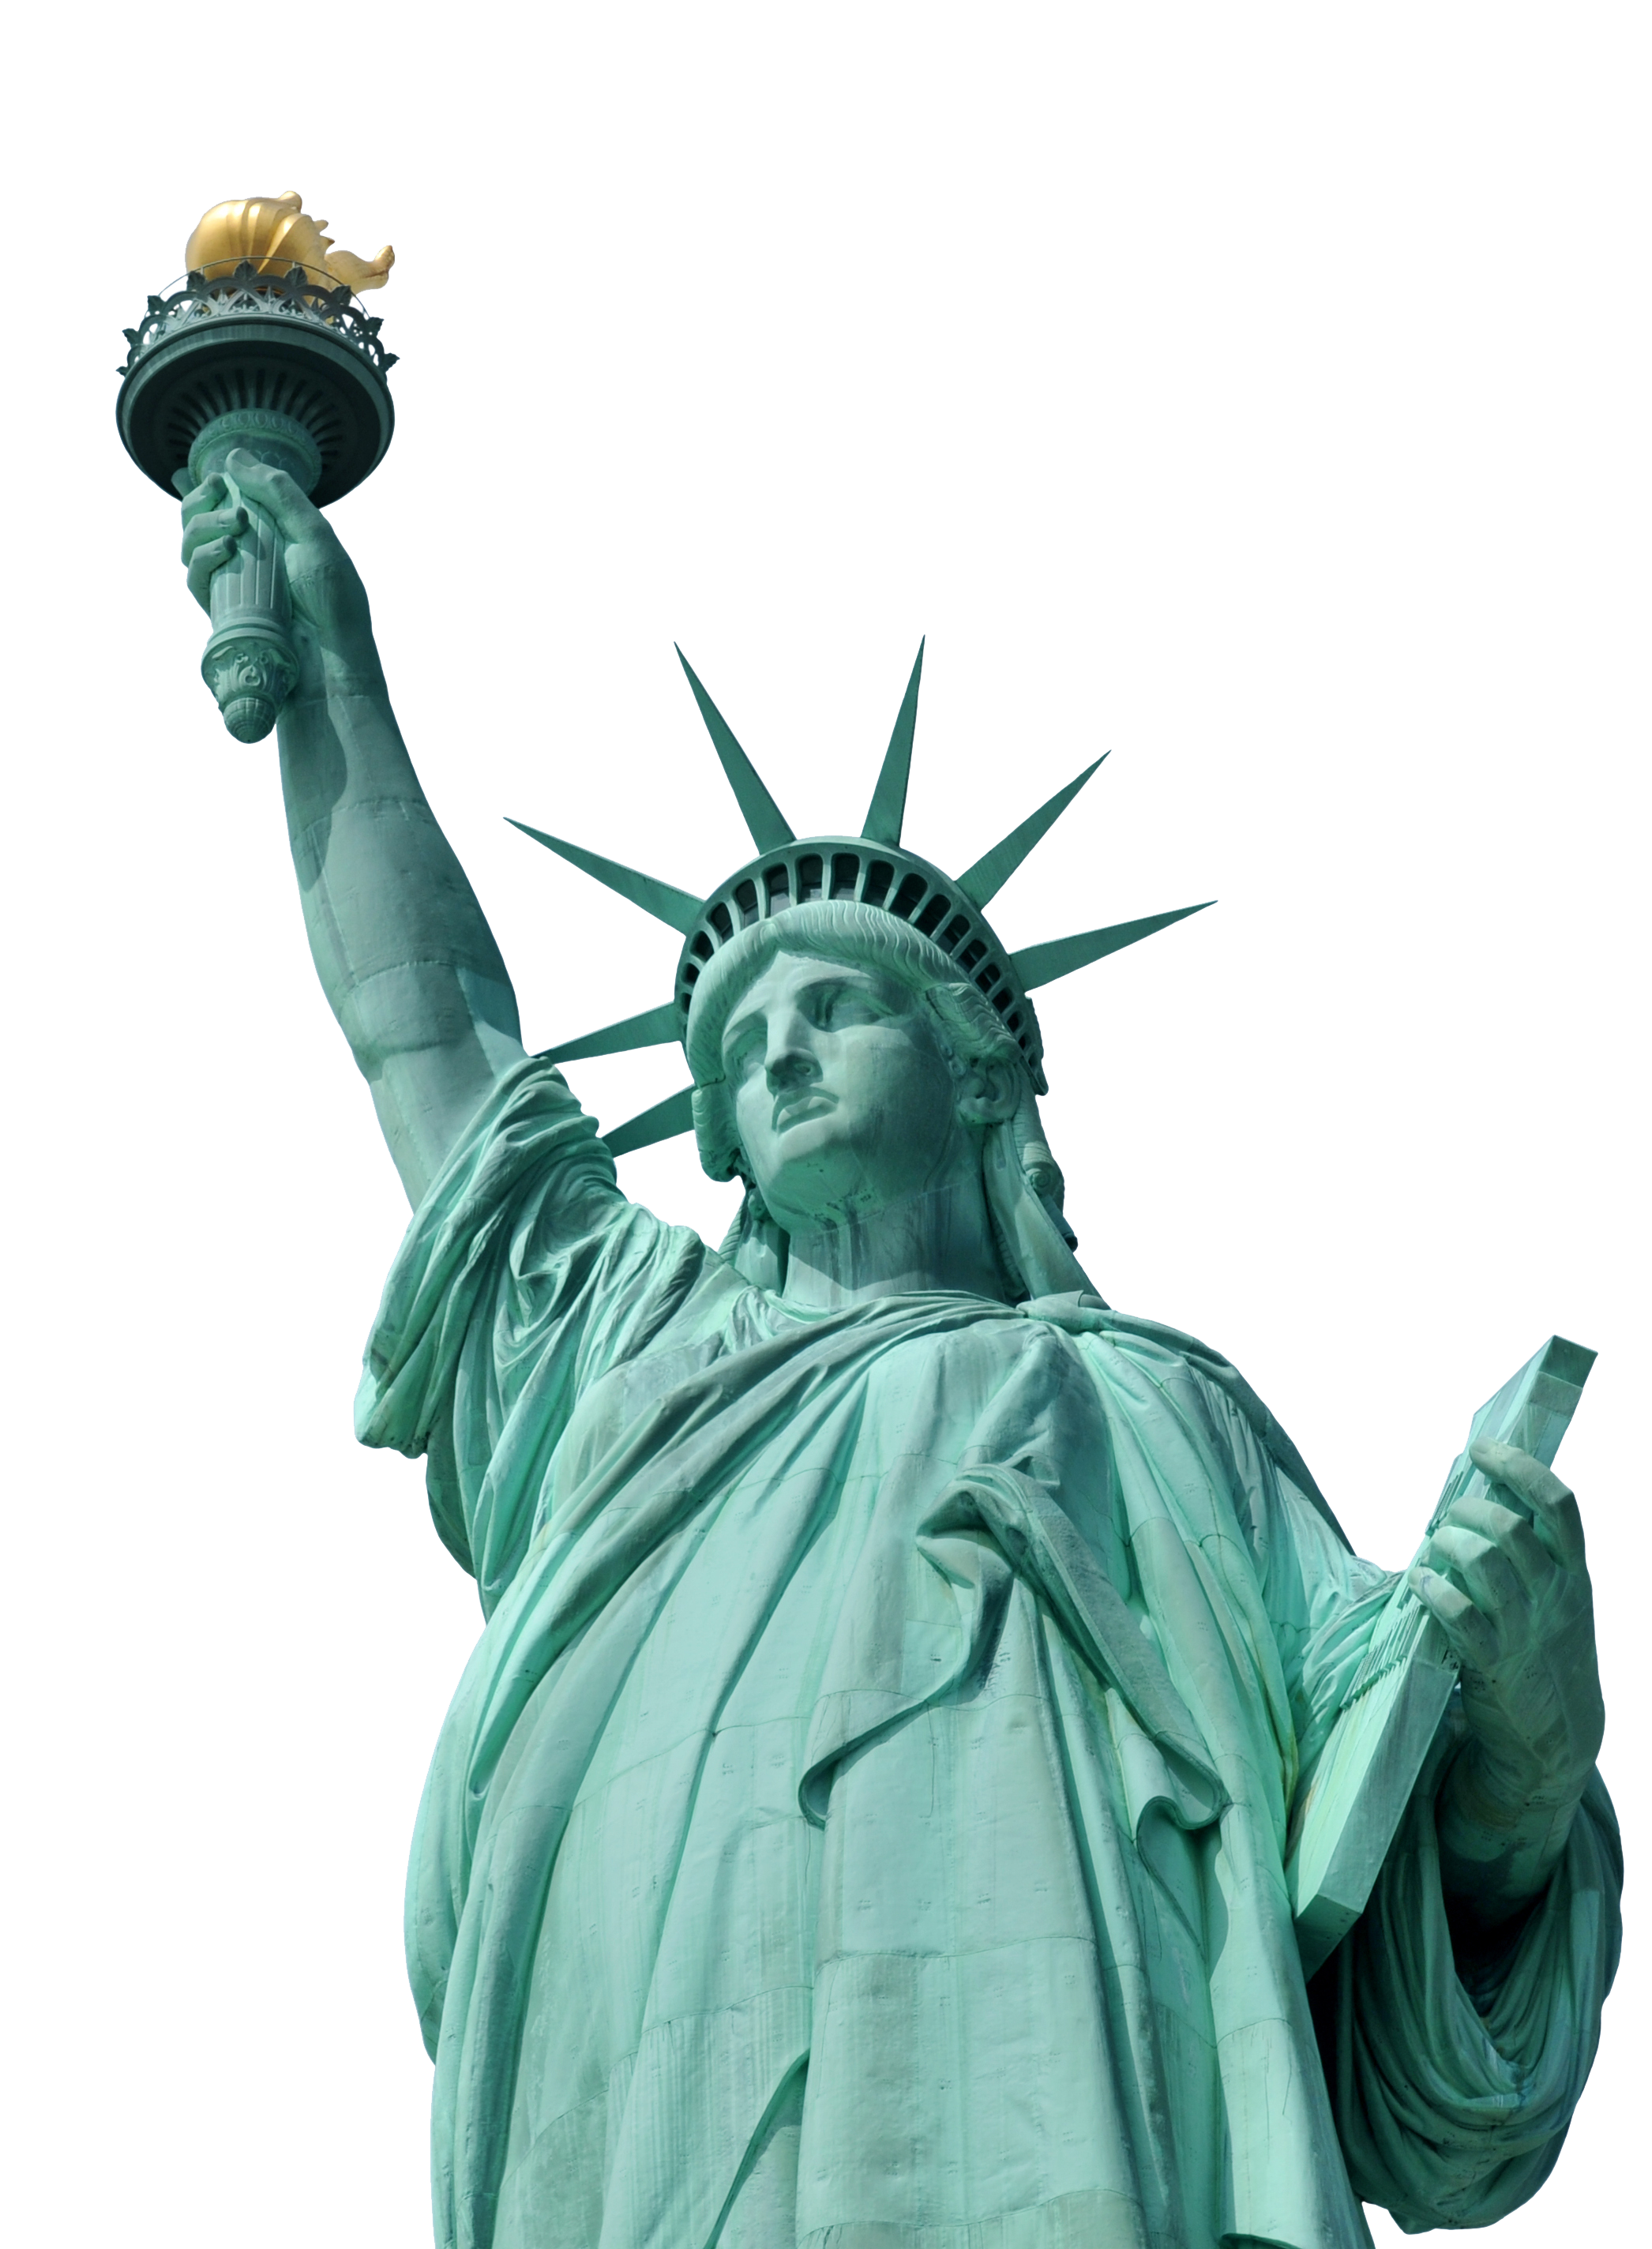 Download Statue Of Liberty Clipart HQ PNG Image.